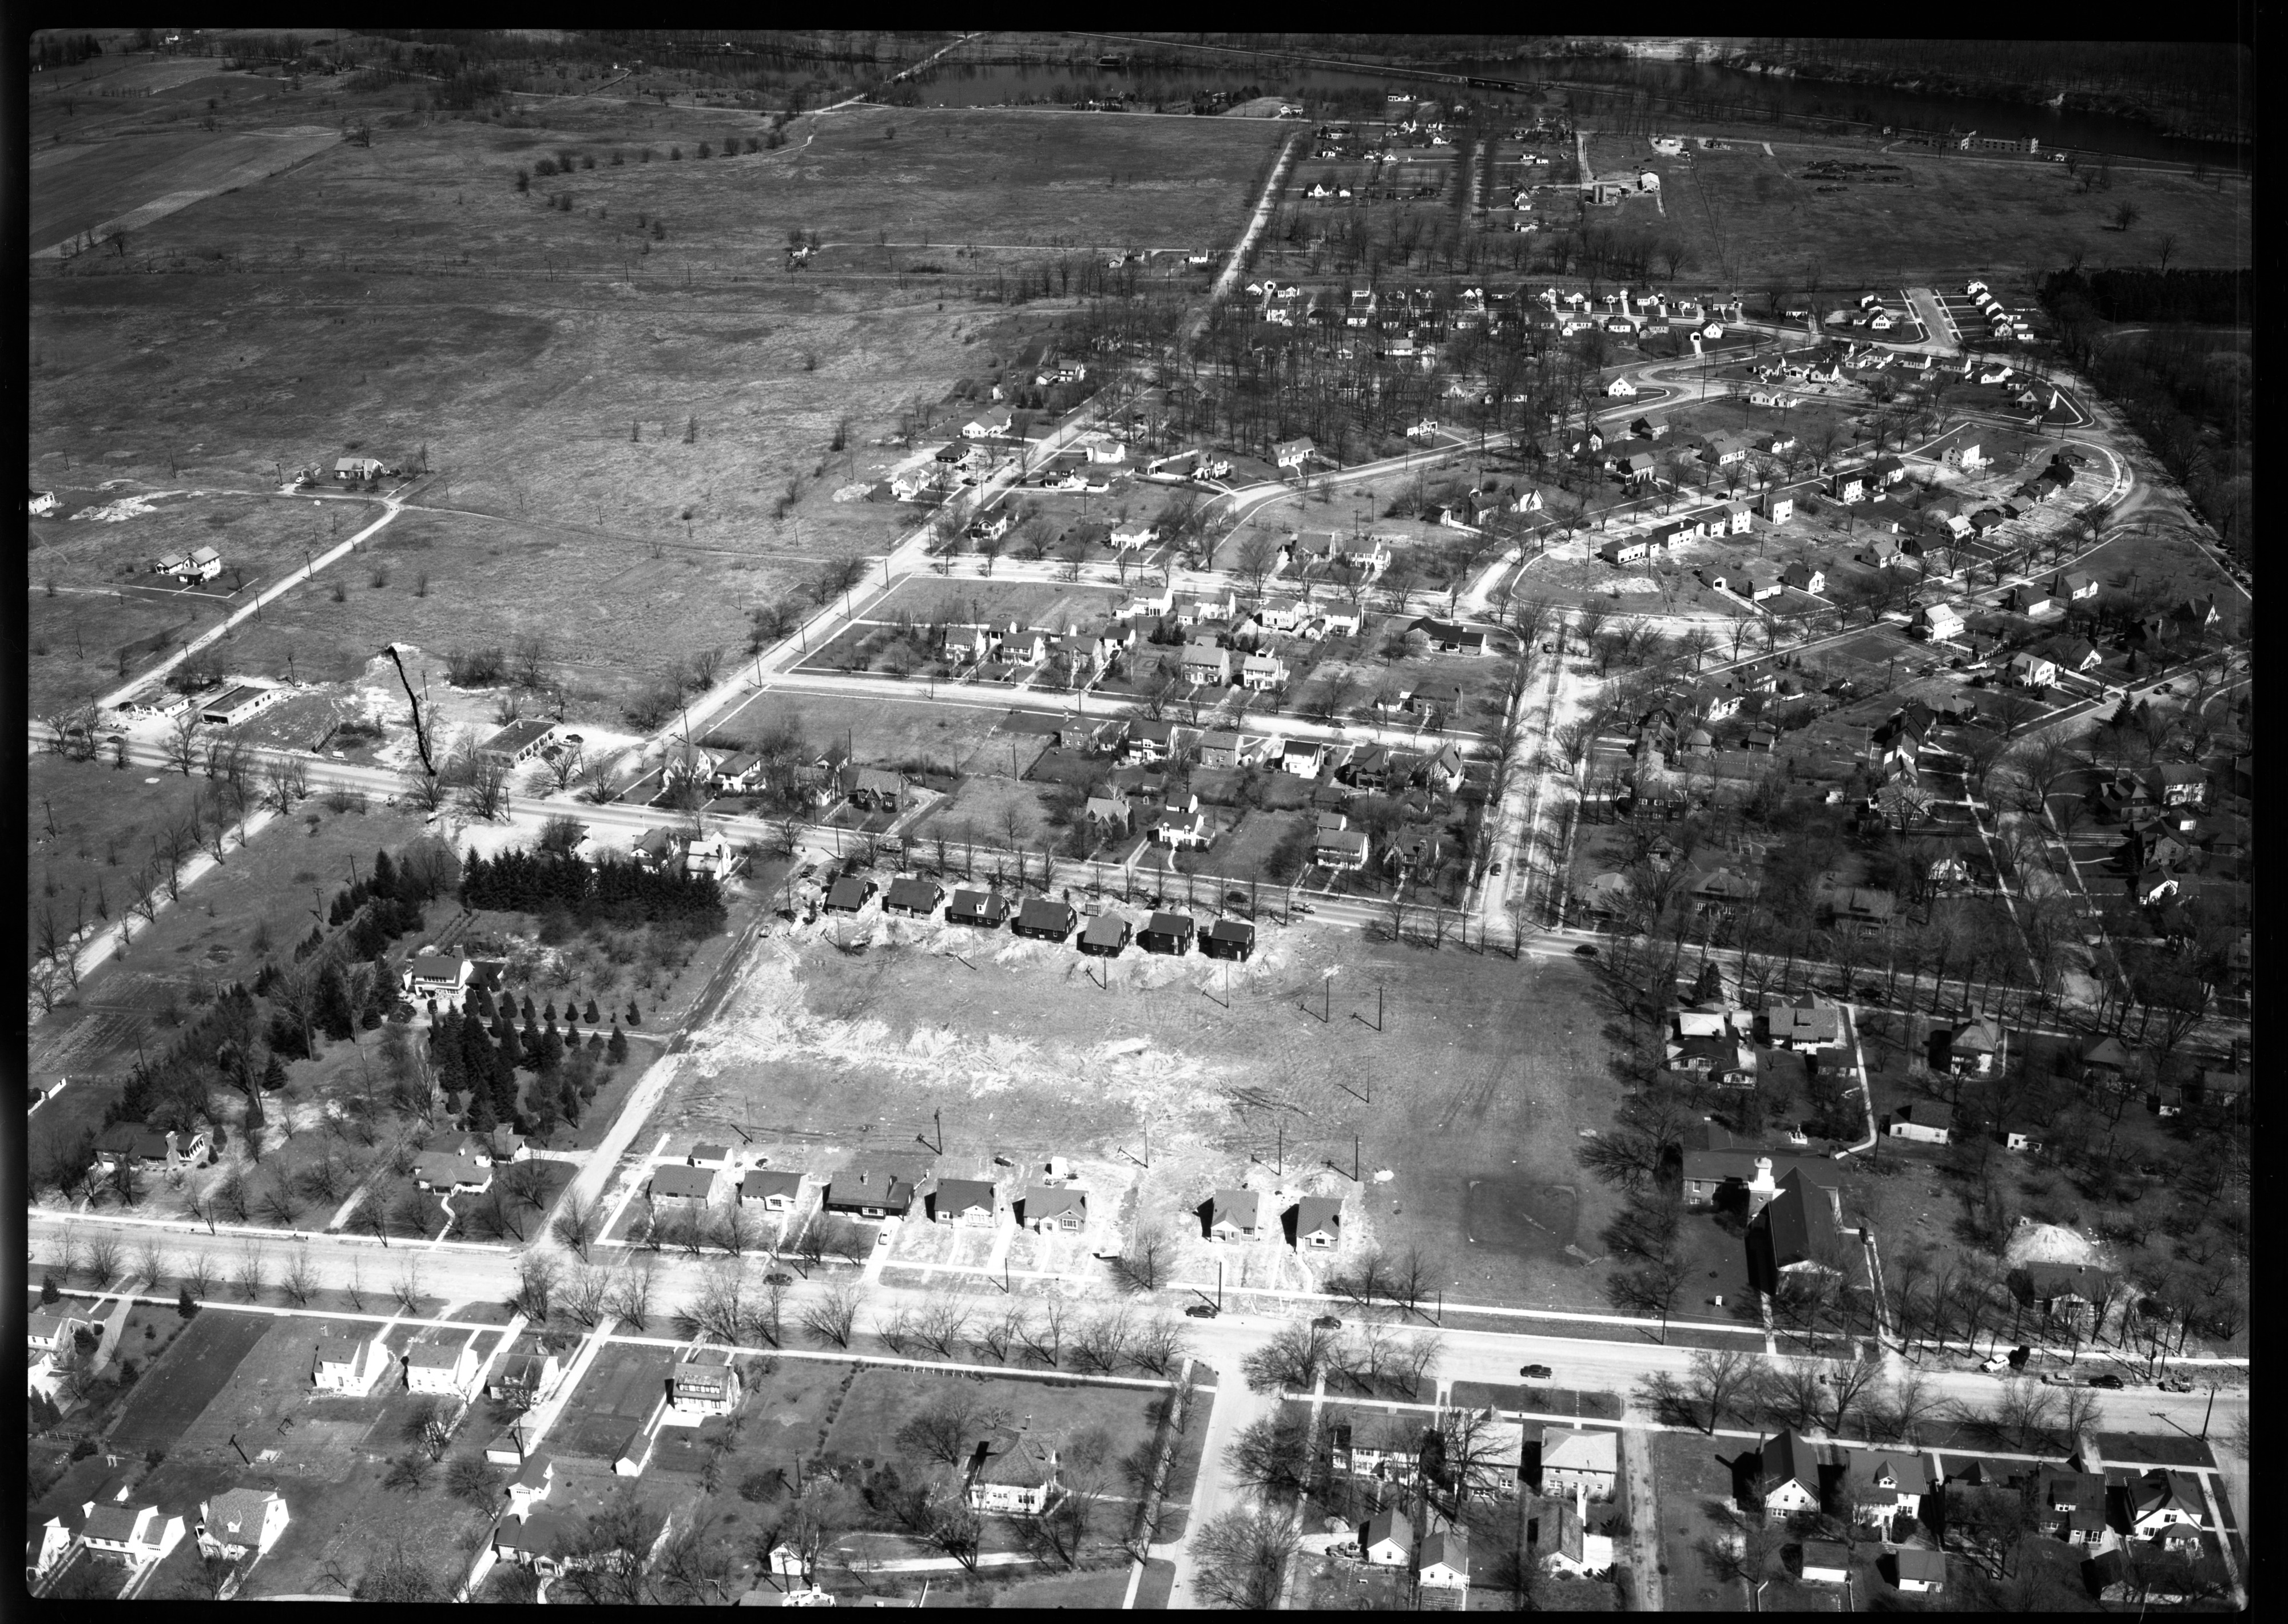 Aerial Photograph of Building Site between Washtenaw and Packard Rds., April 1951 image